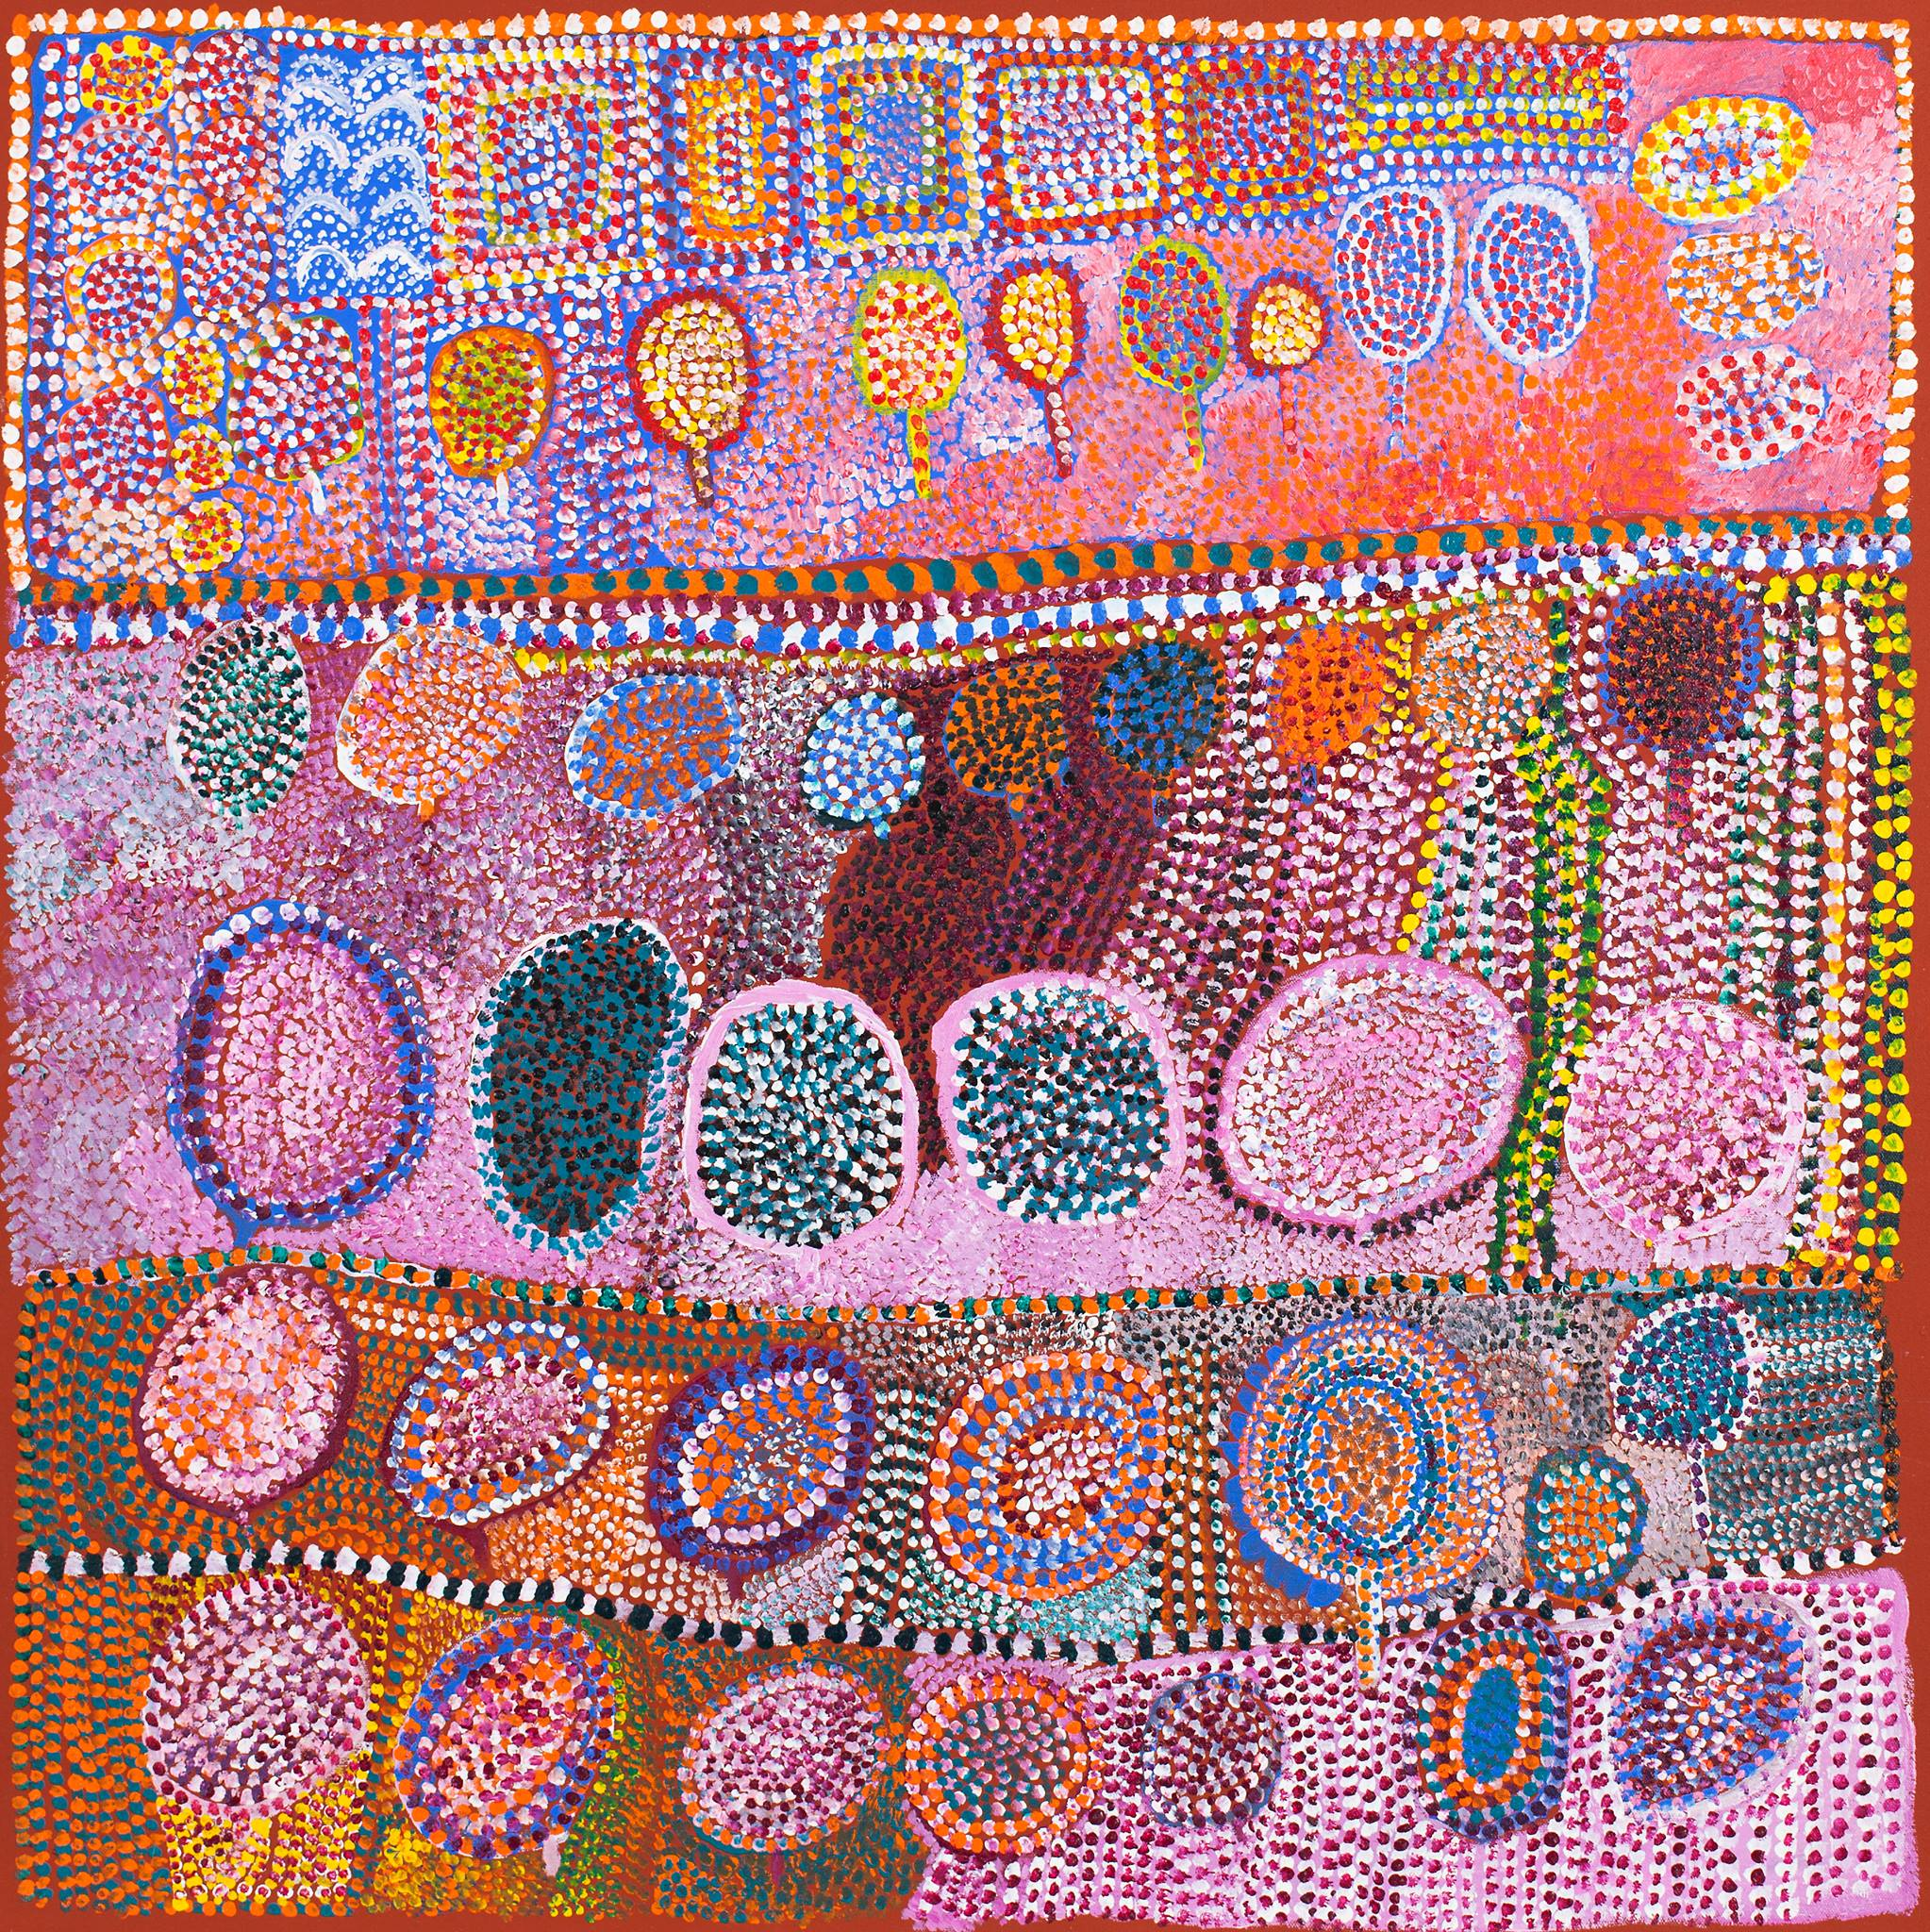 Aboriginal artwork, colorful with lots of pinks, reds, and orange tones. Dots of white paint forming geometric shapes in rows.